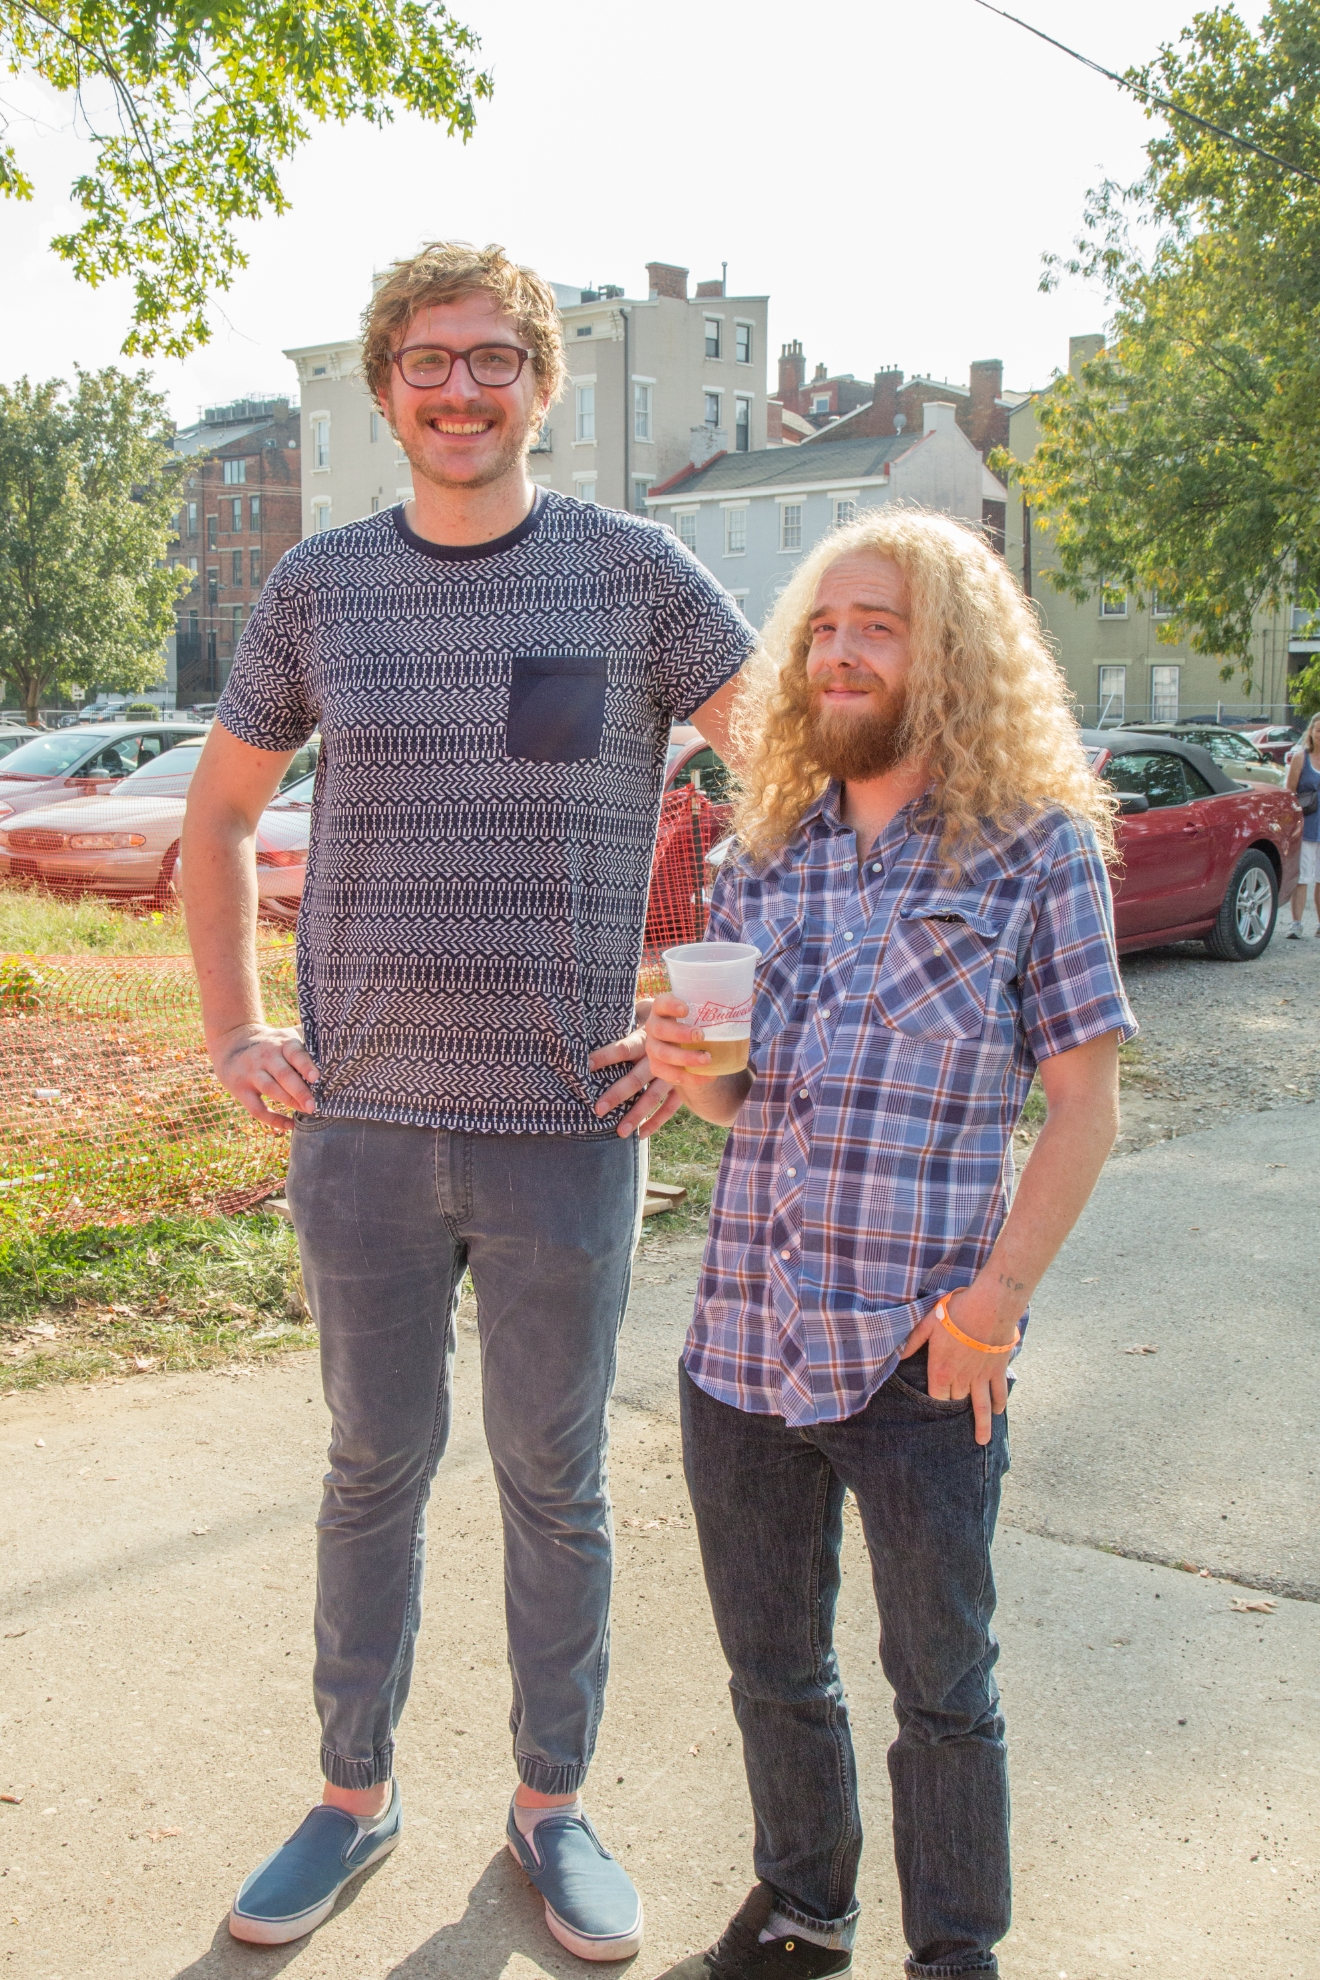 Alex Baker of Coconut Milk and Daniel Meeks / Image: Catherine Viox